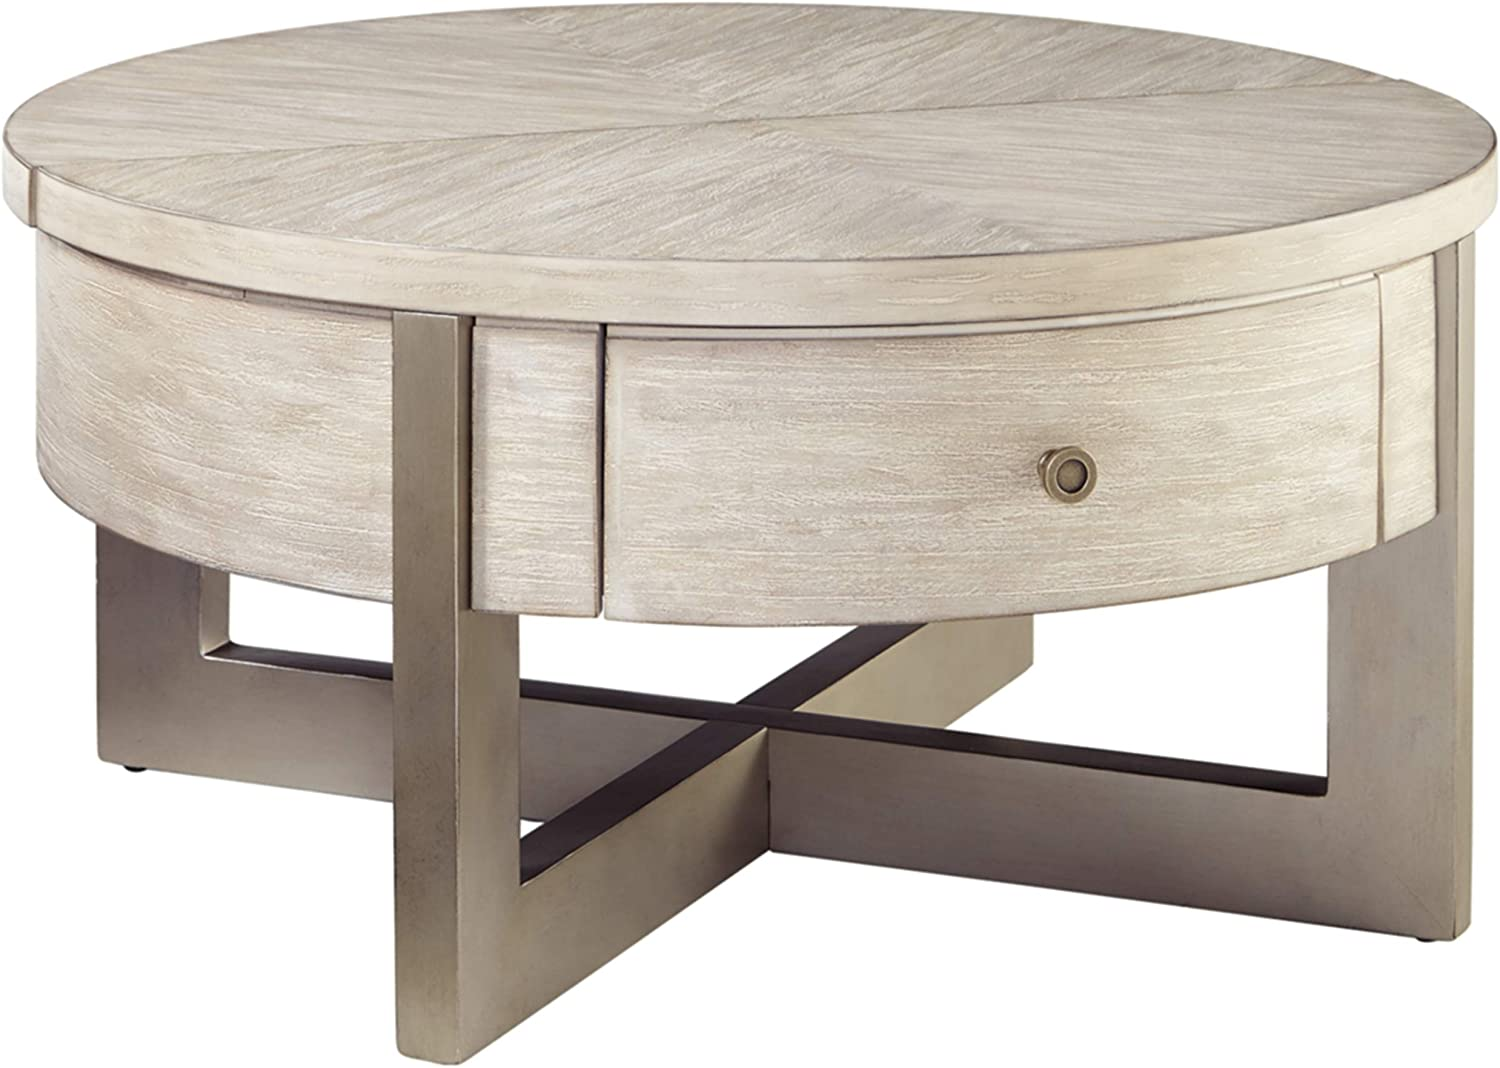 Signature Design by Ashley Urlander Round Lift Top Cocktail Table Whitewash